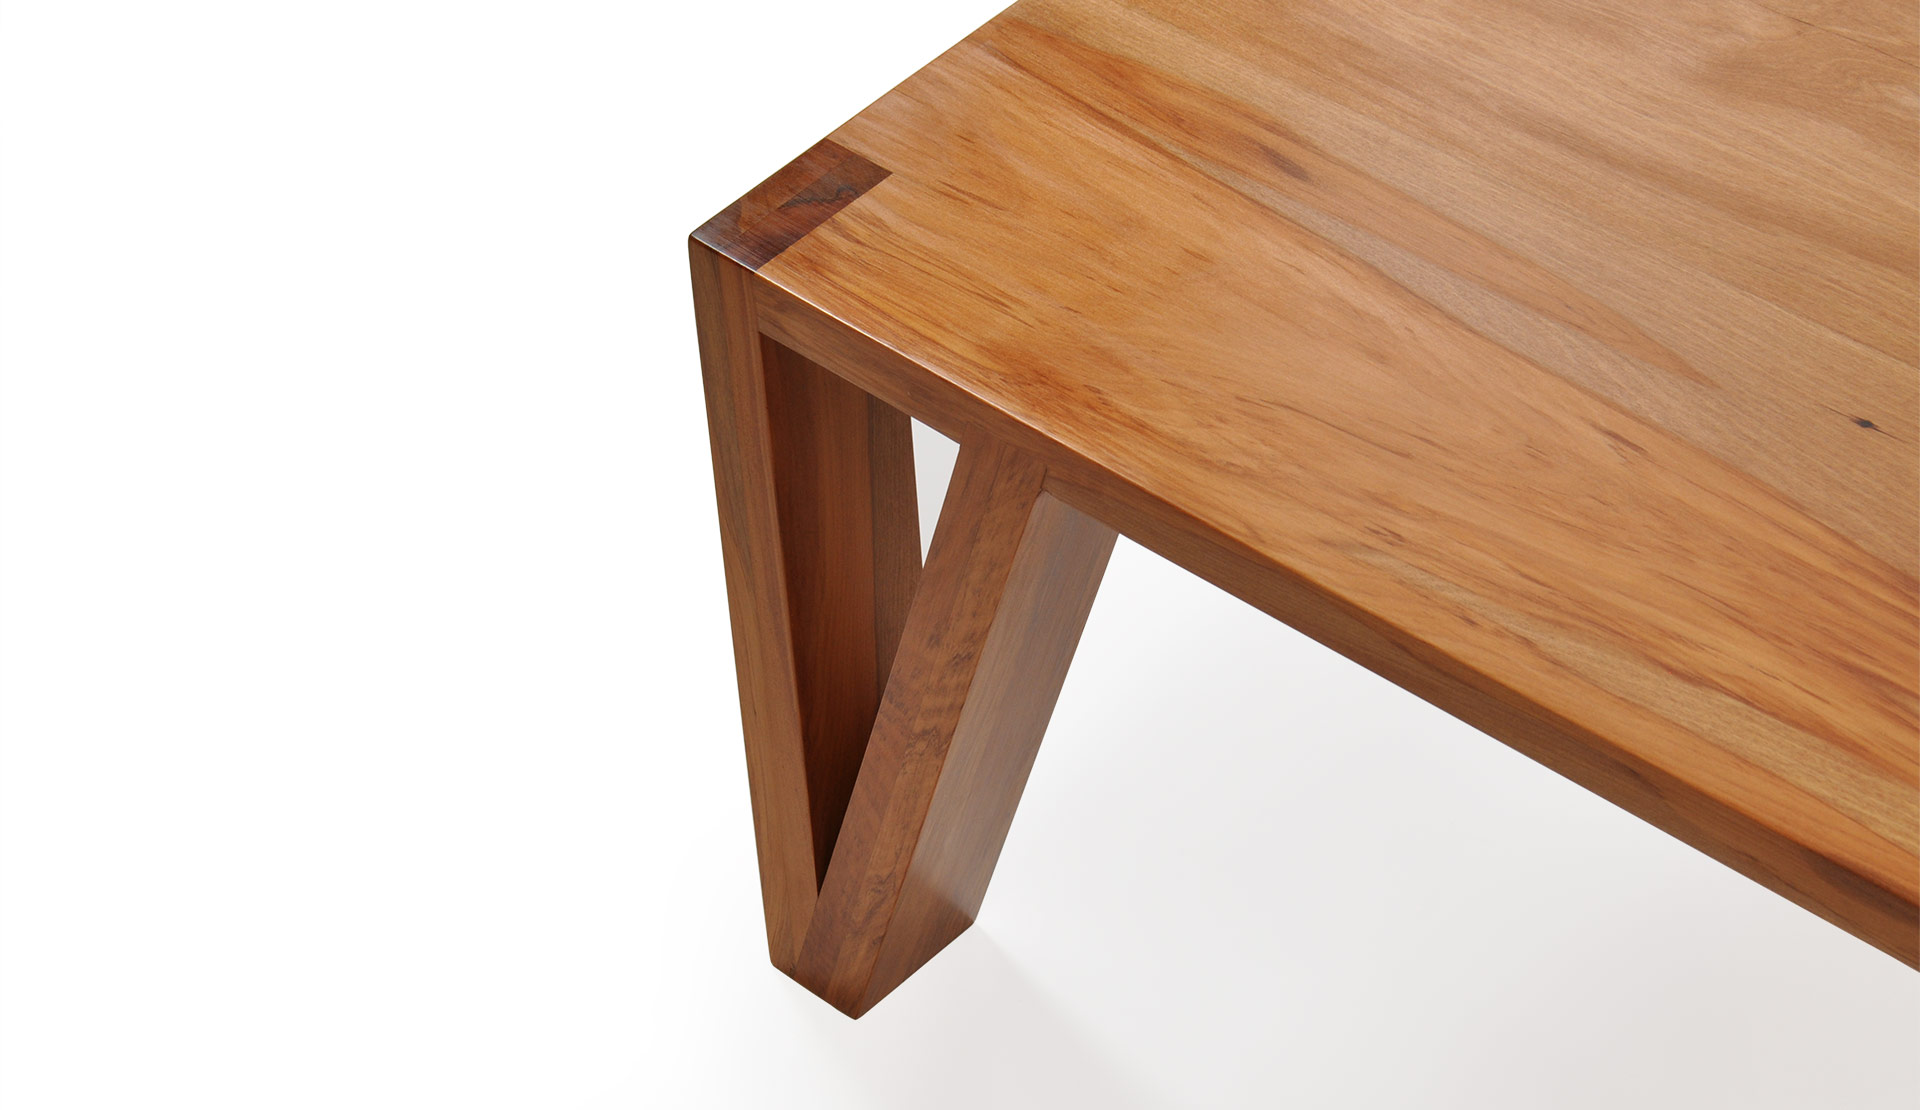 Toki – Custom furniture made by hand in Auckland New Zealand by